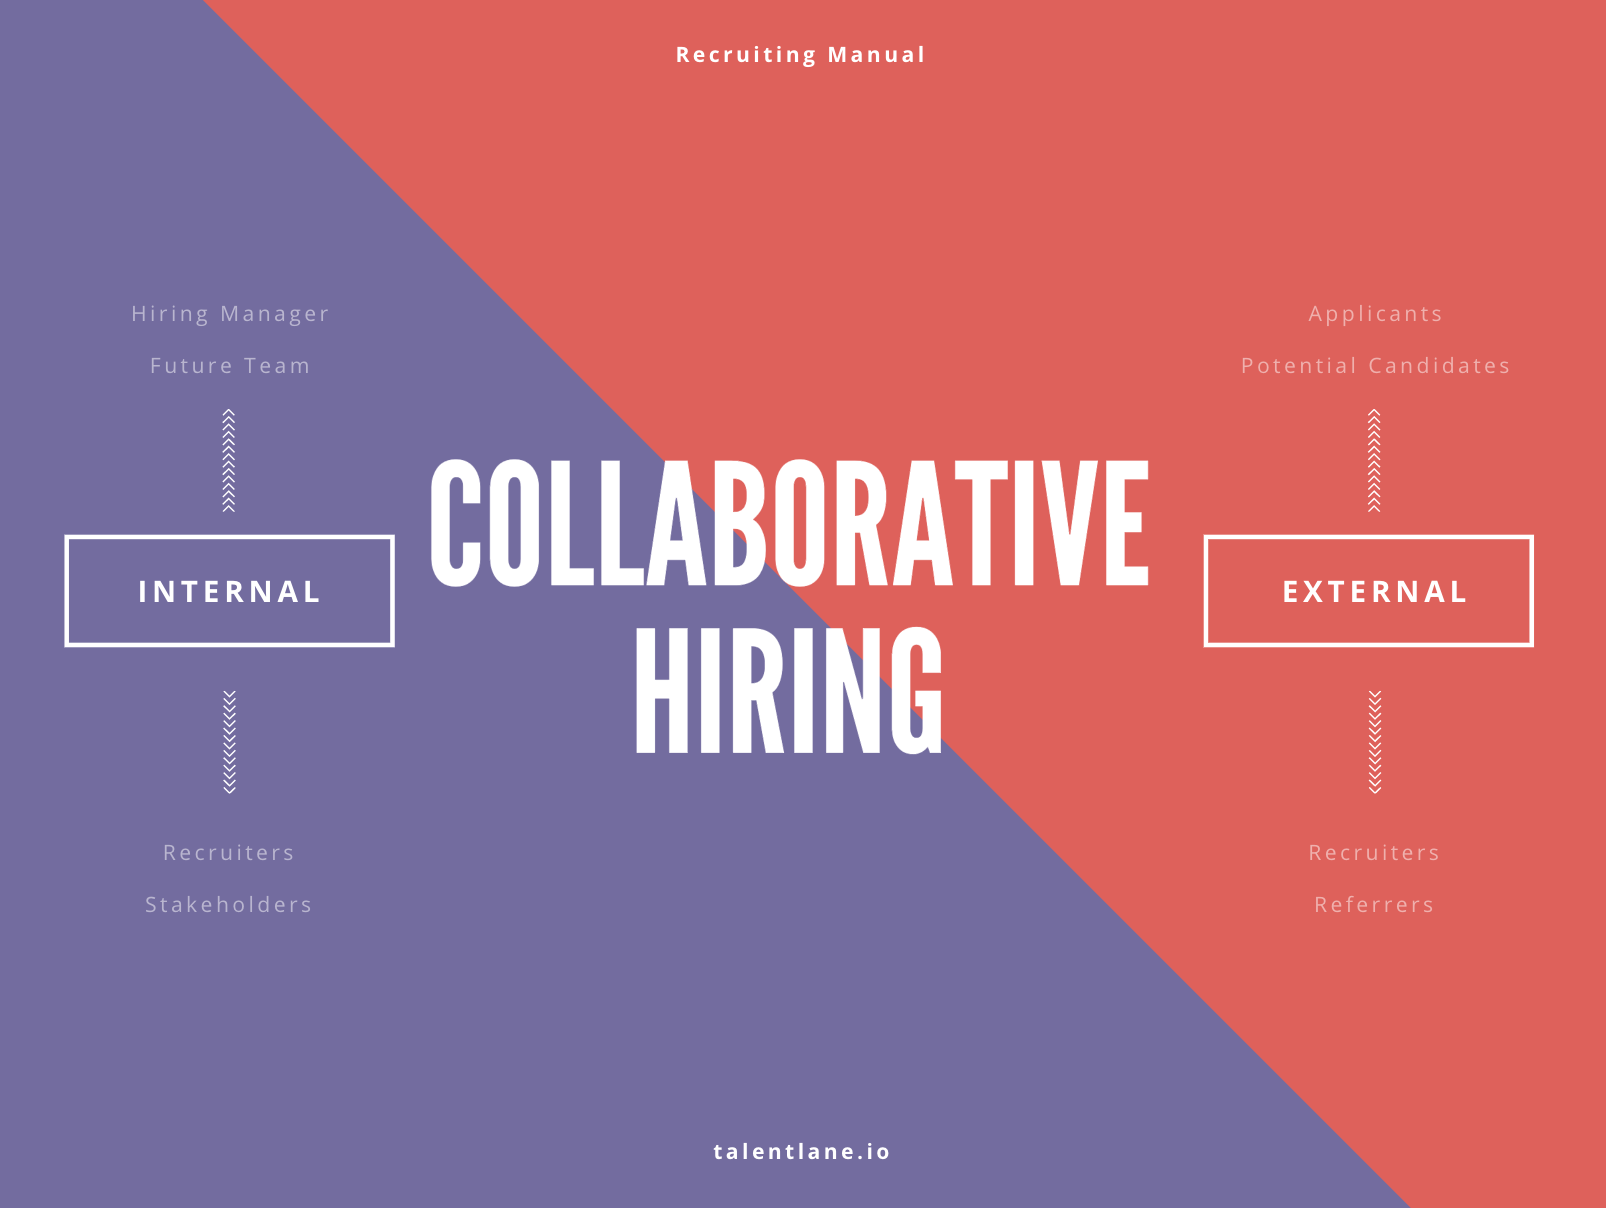 Collaborative Hiring